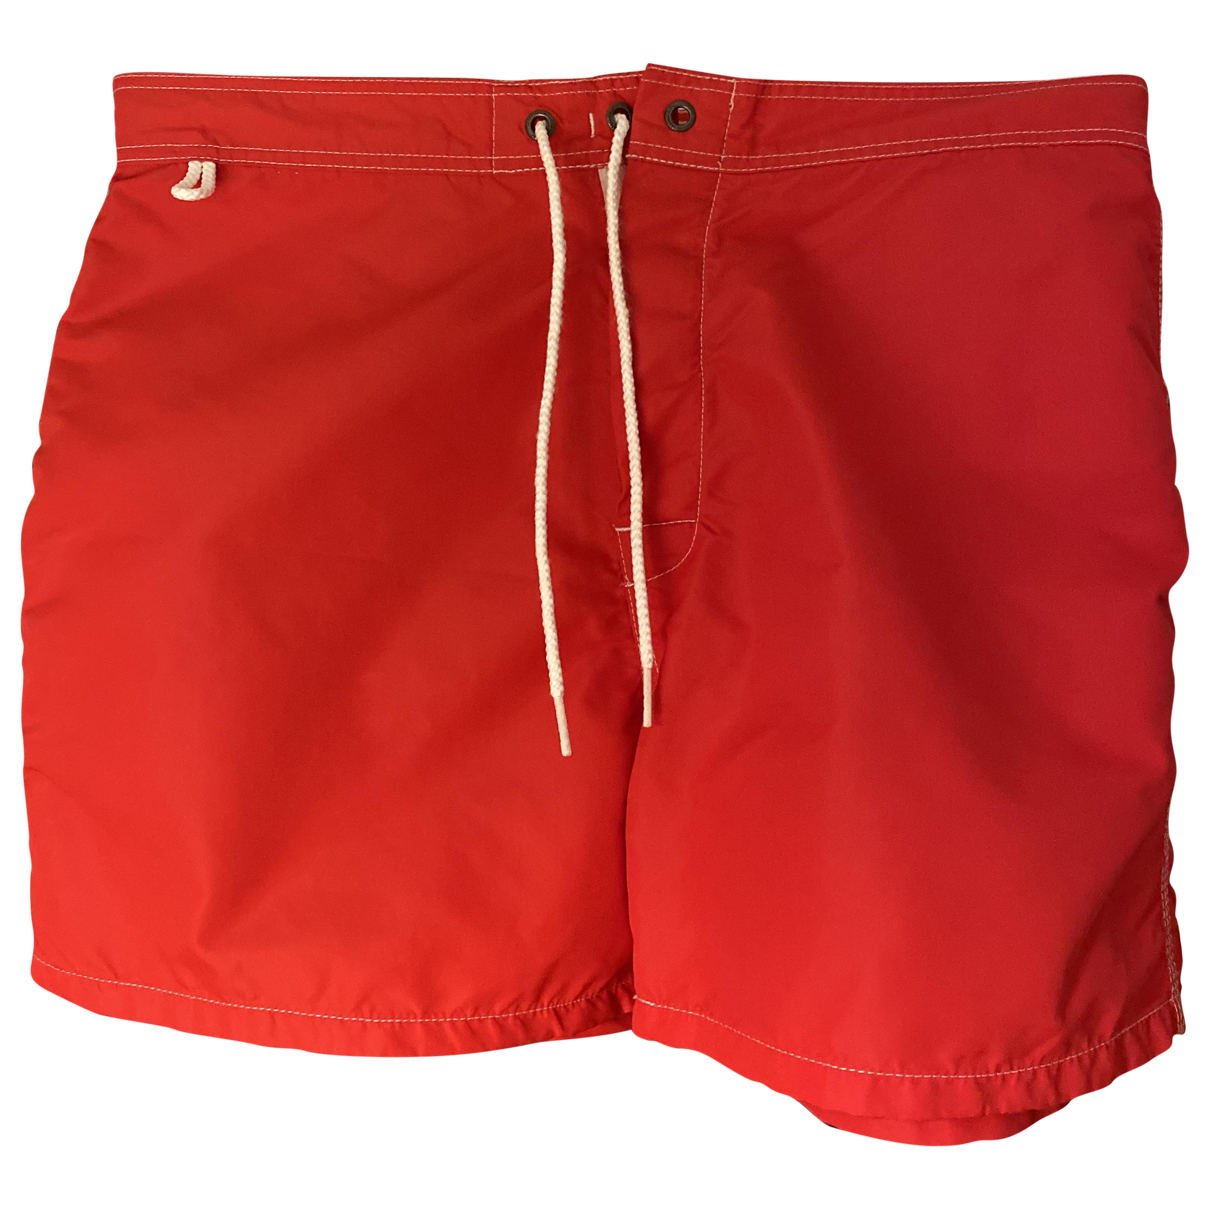 Sundek N Red Cotton - elasthane Swimwear for Men 32 UK - US